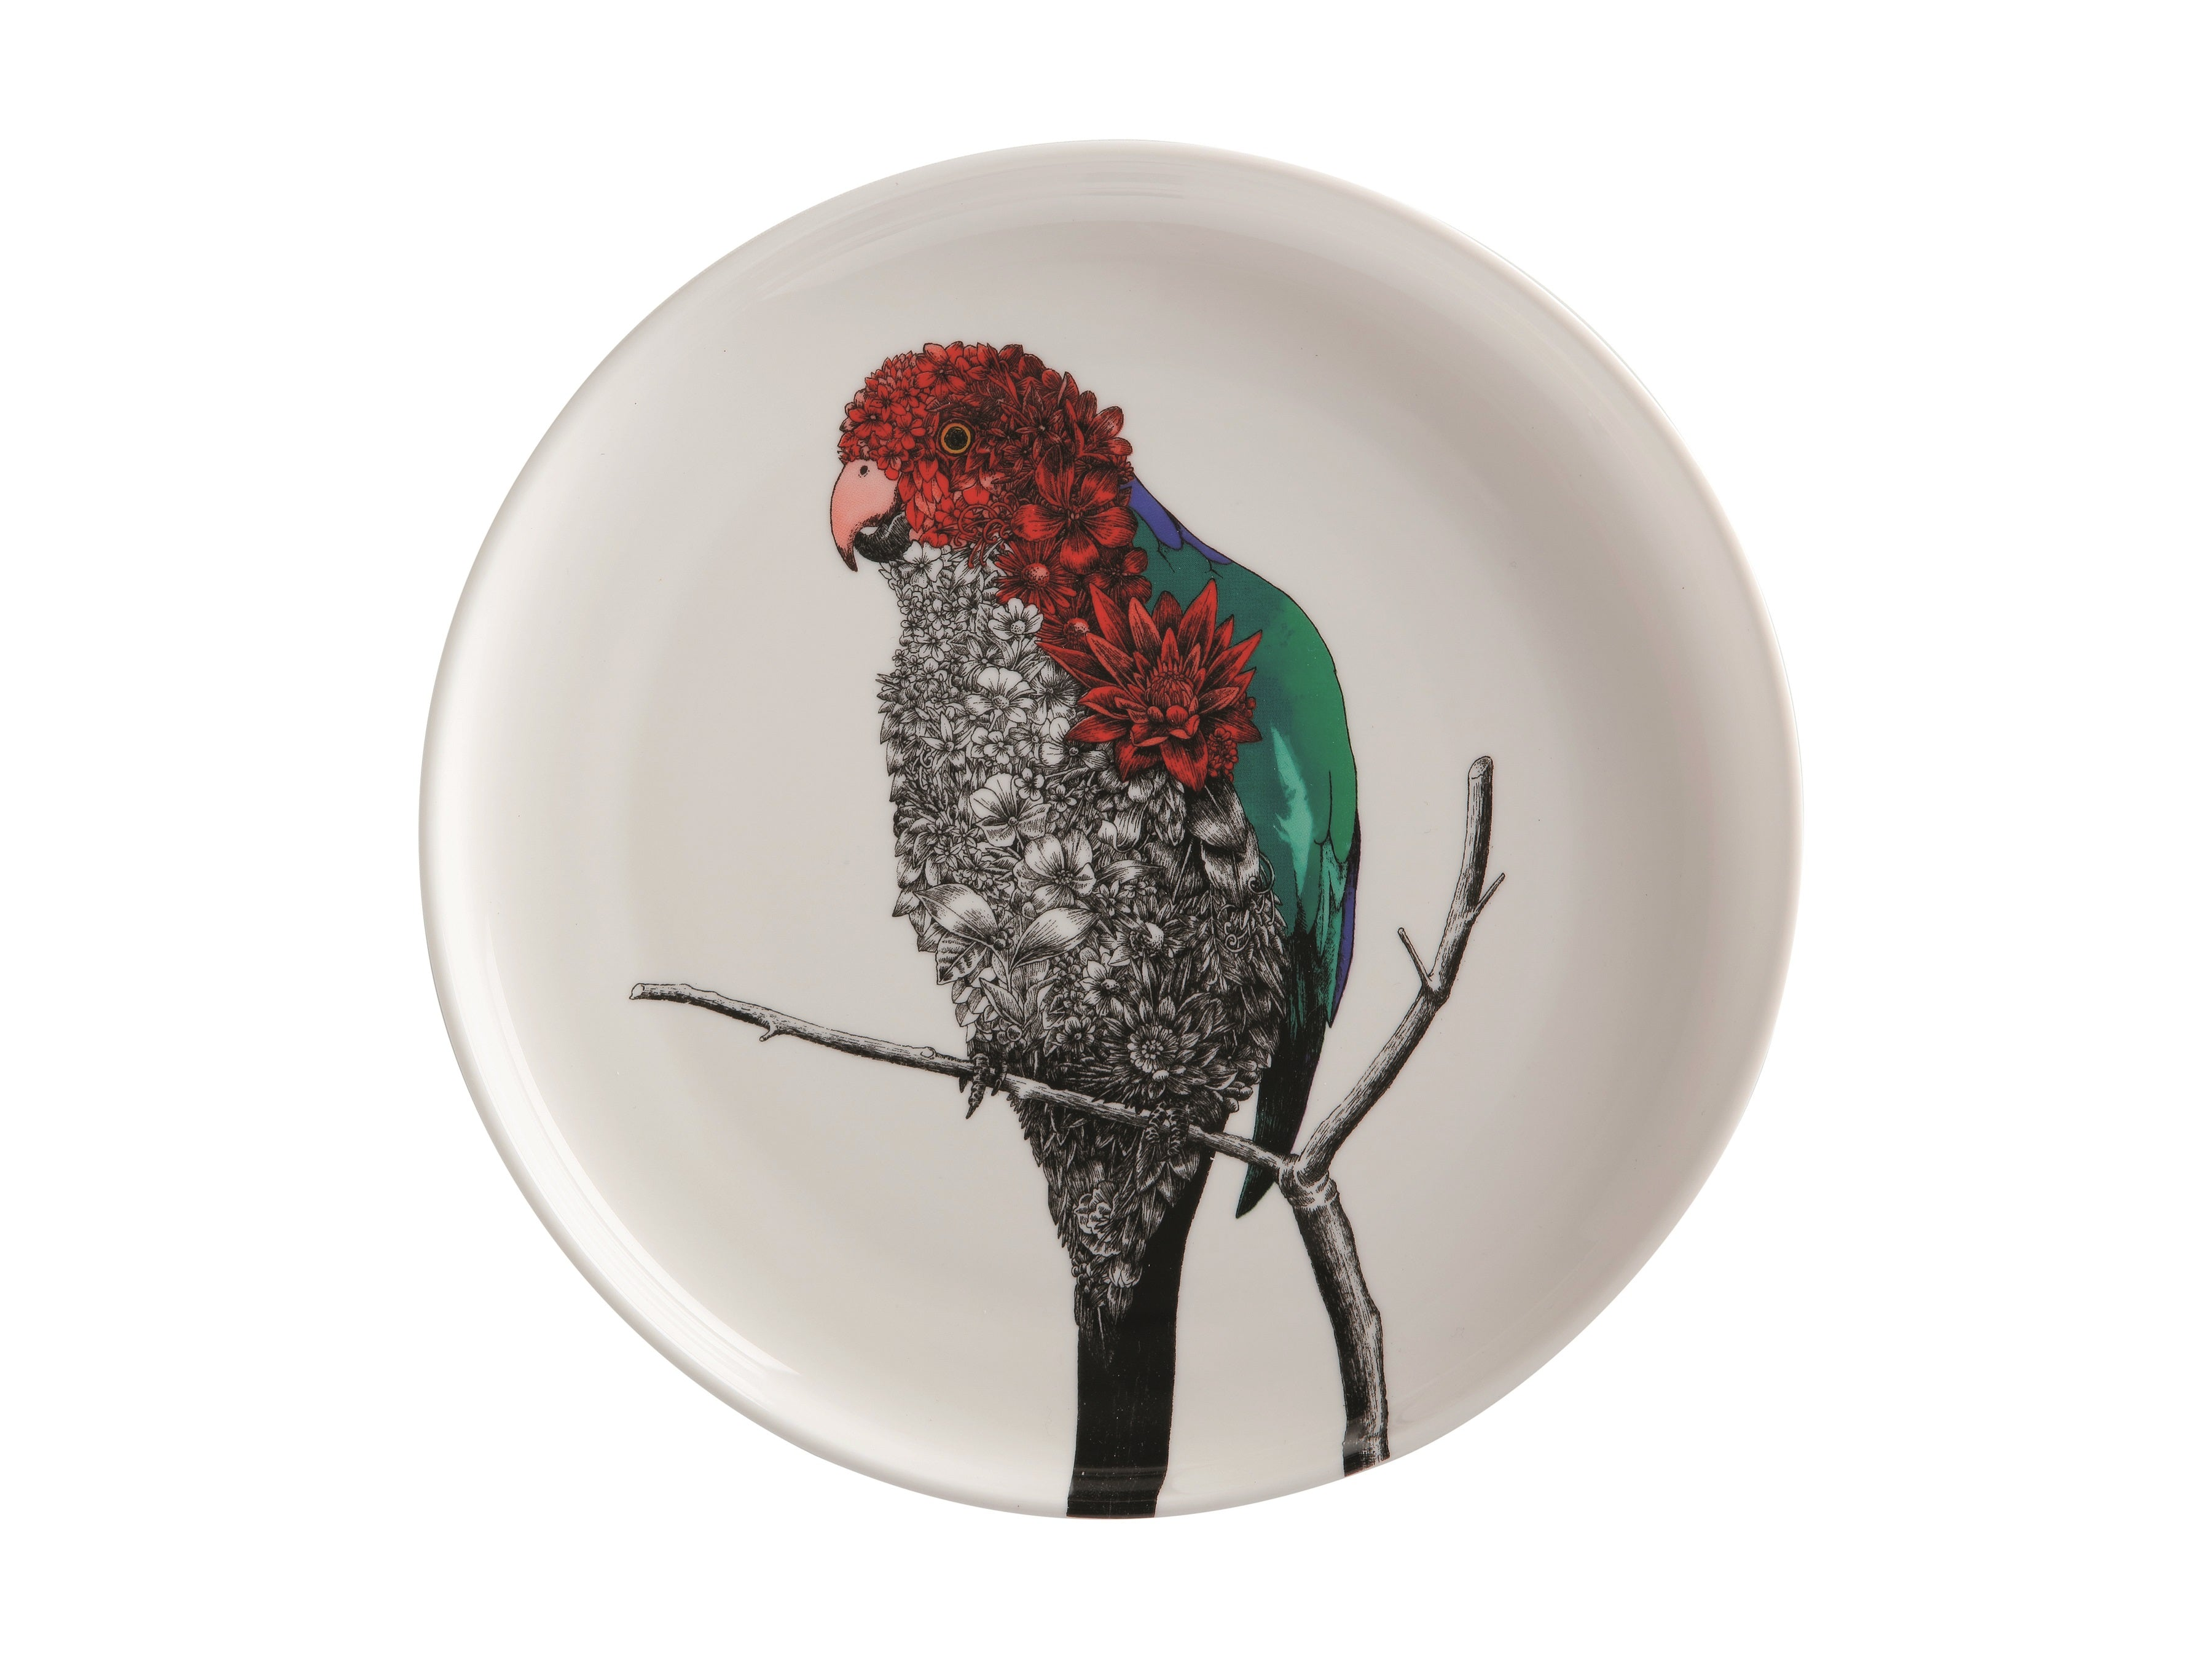 MW Marini Ferlazzo Birds Plate 20cm King Parrot Gift Boxed